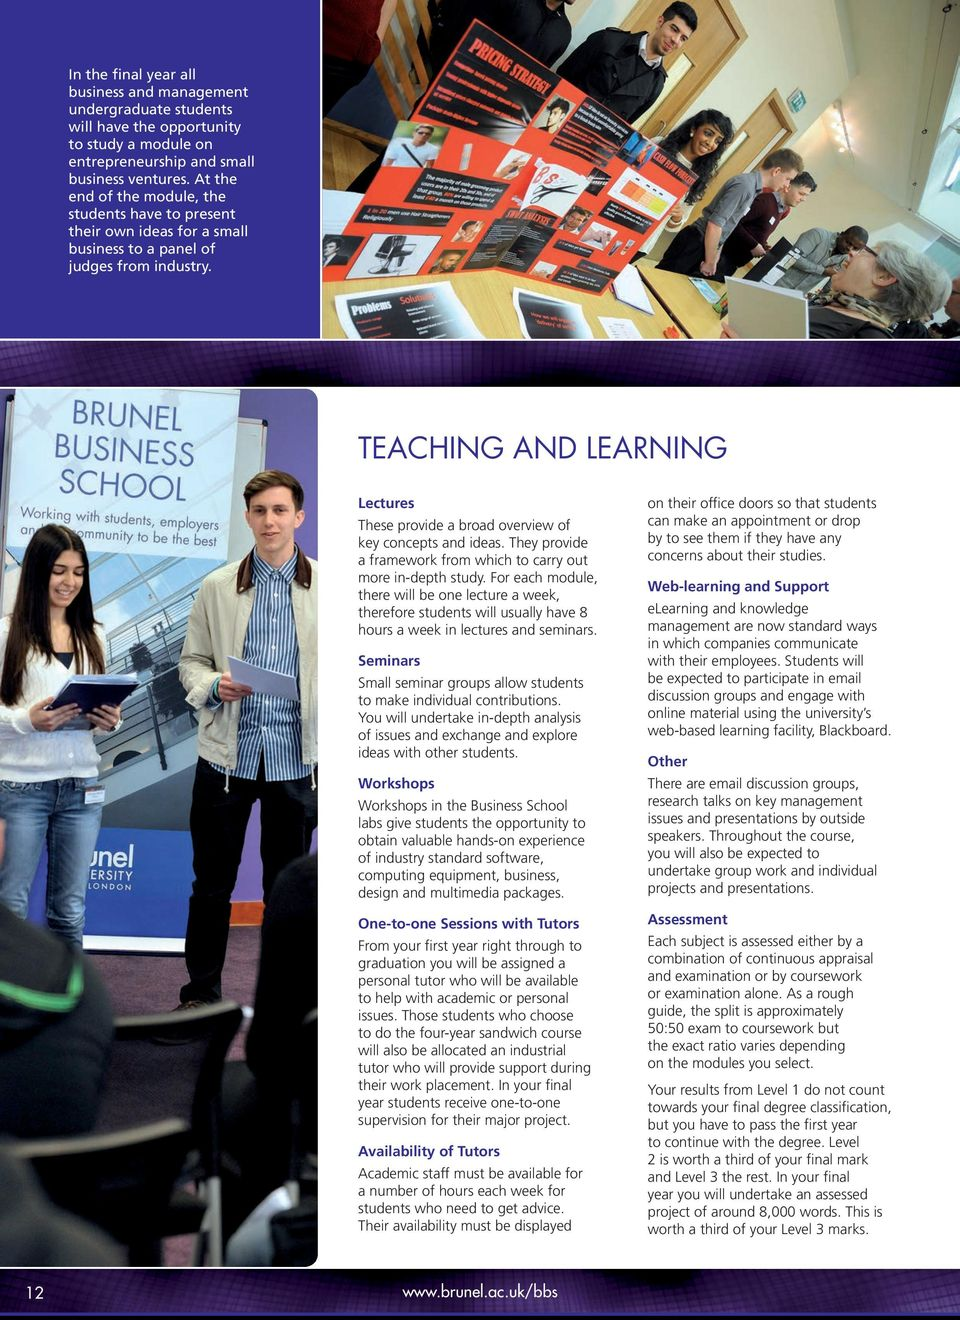 TEACHING AND LEARNING Lectures These provide a broad overview of key concepts and ideas. They provide a framework from which to carry out more in-depth study.